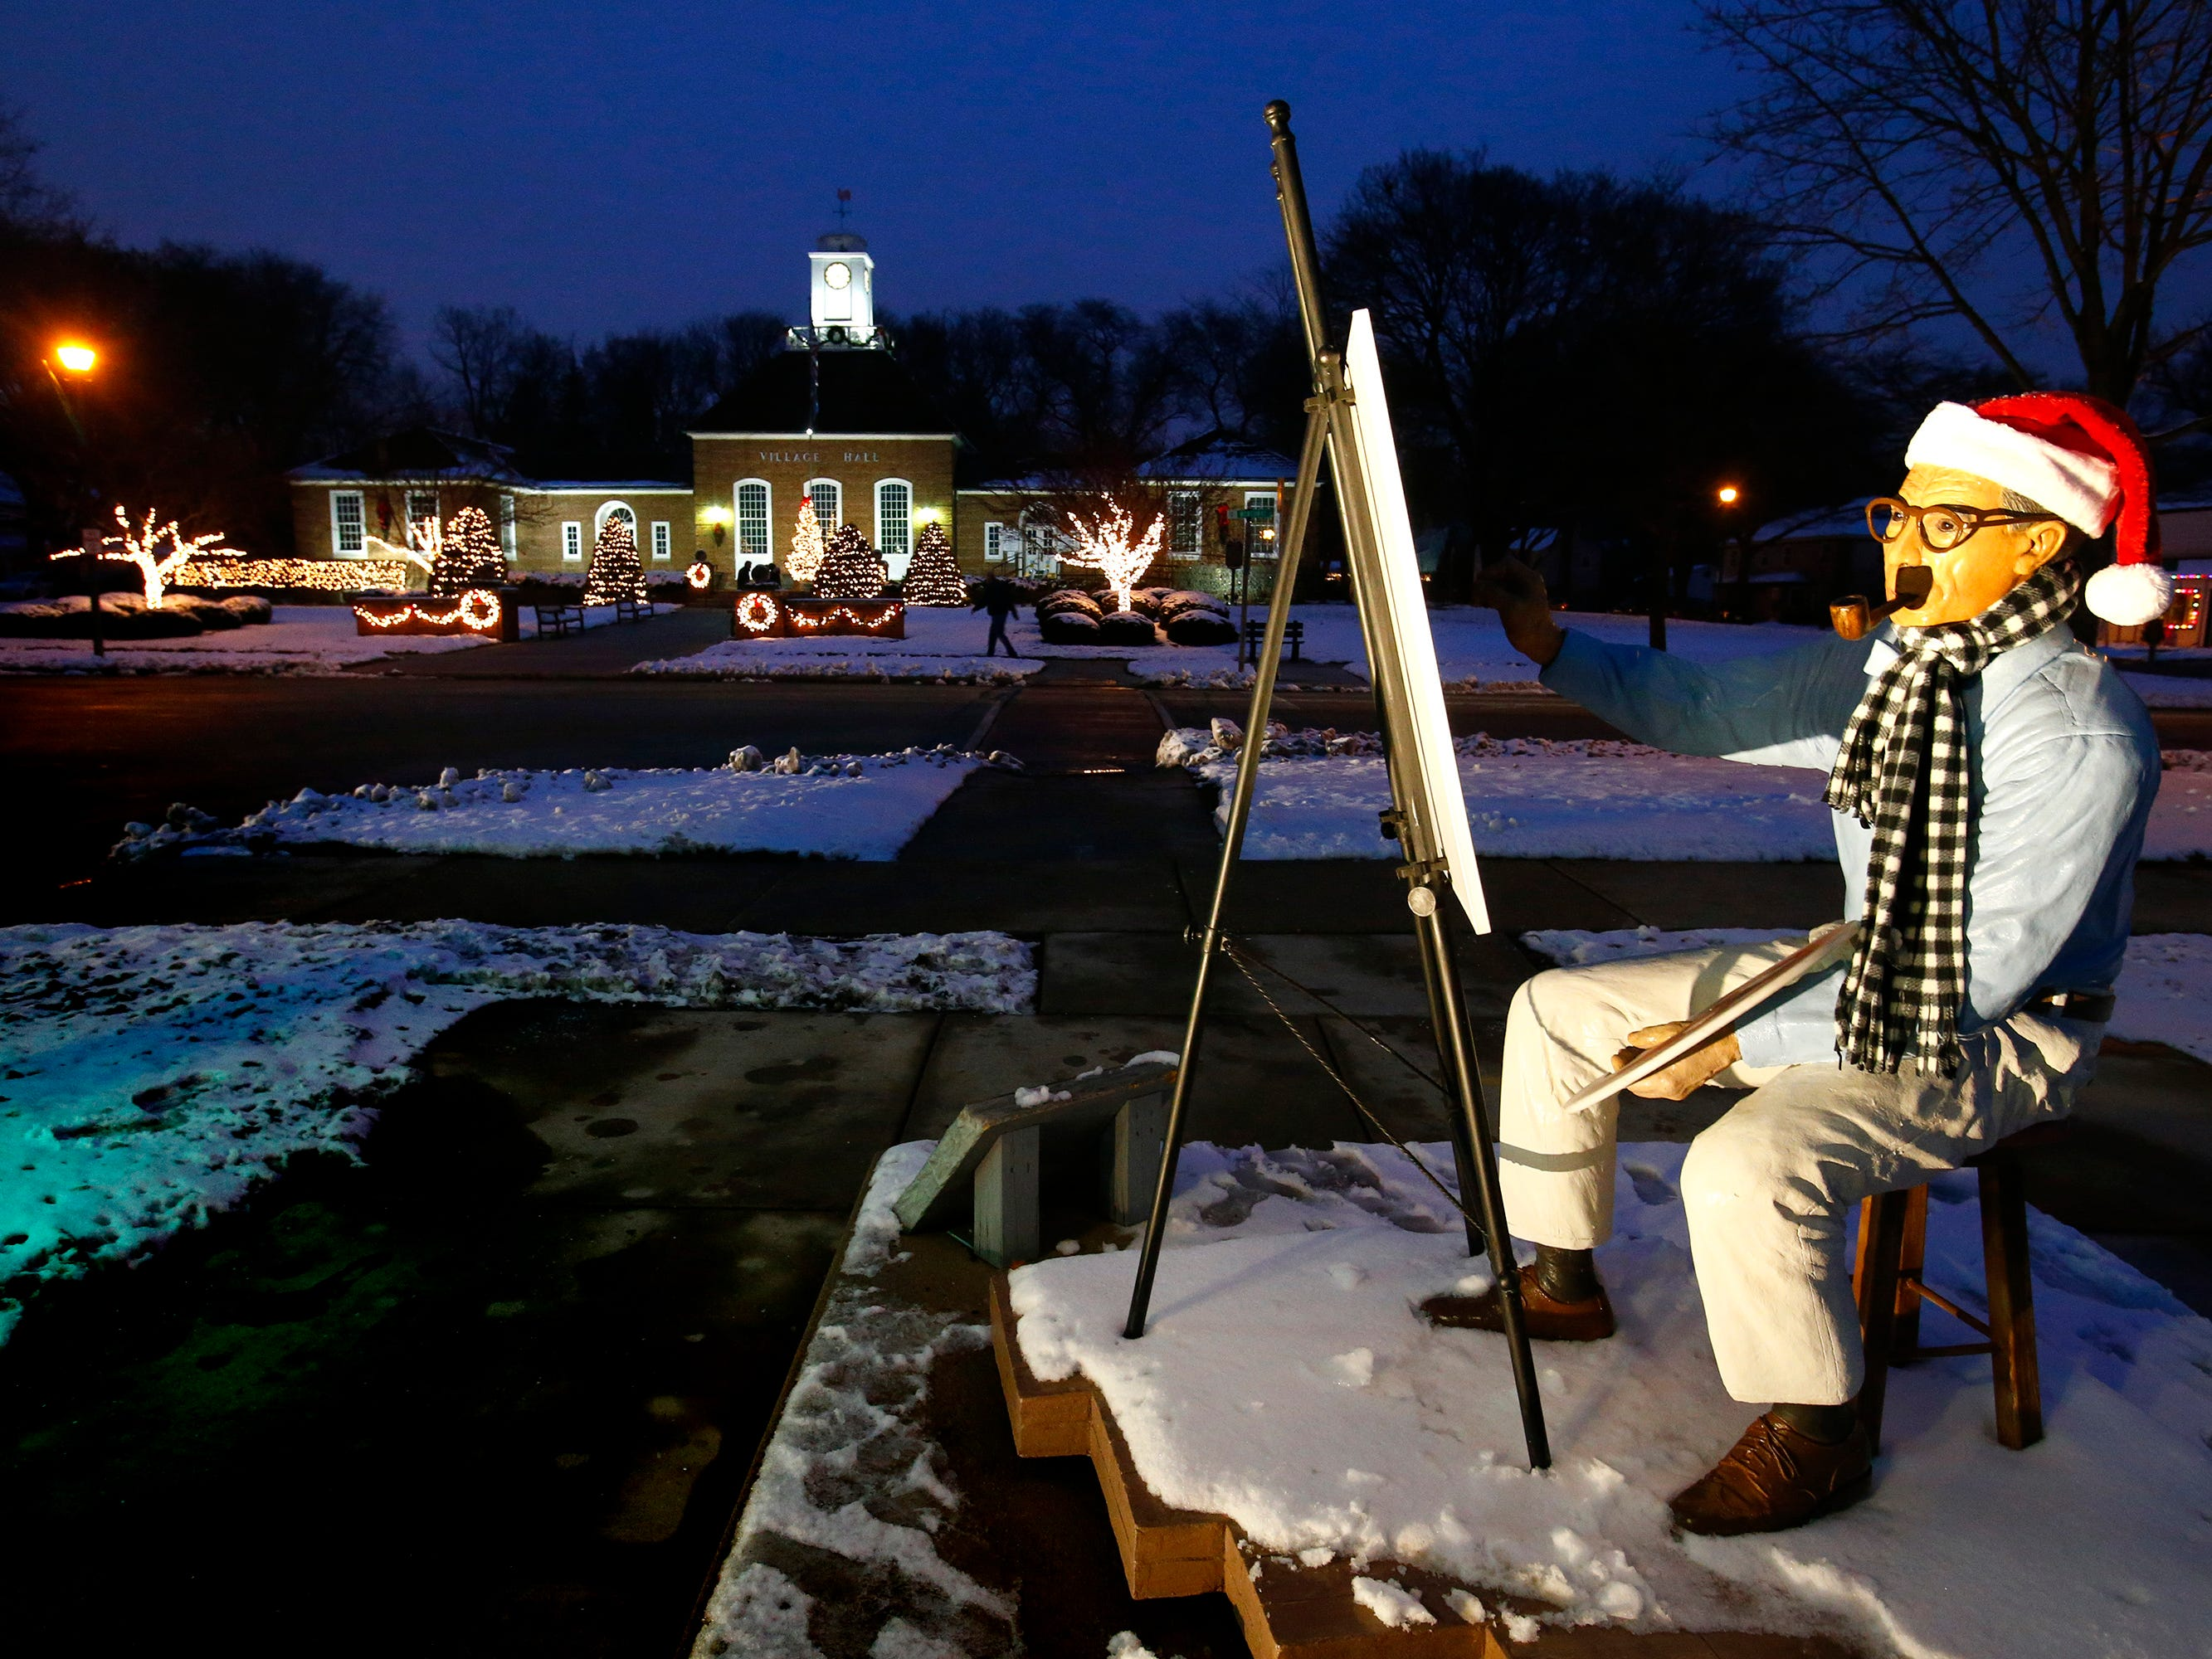 The Village's Norman Rockwell statue keeps painting during Greendale's Dickens of a Christmas Festival on Nov. 30.